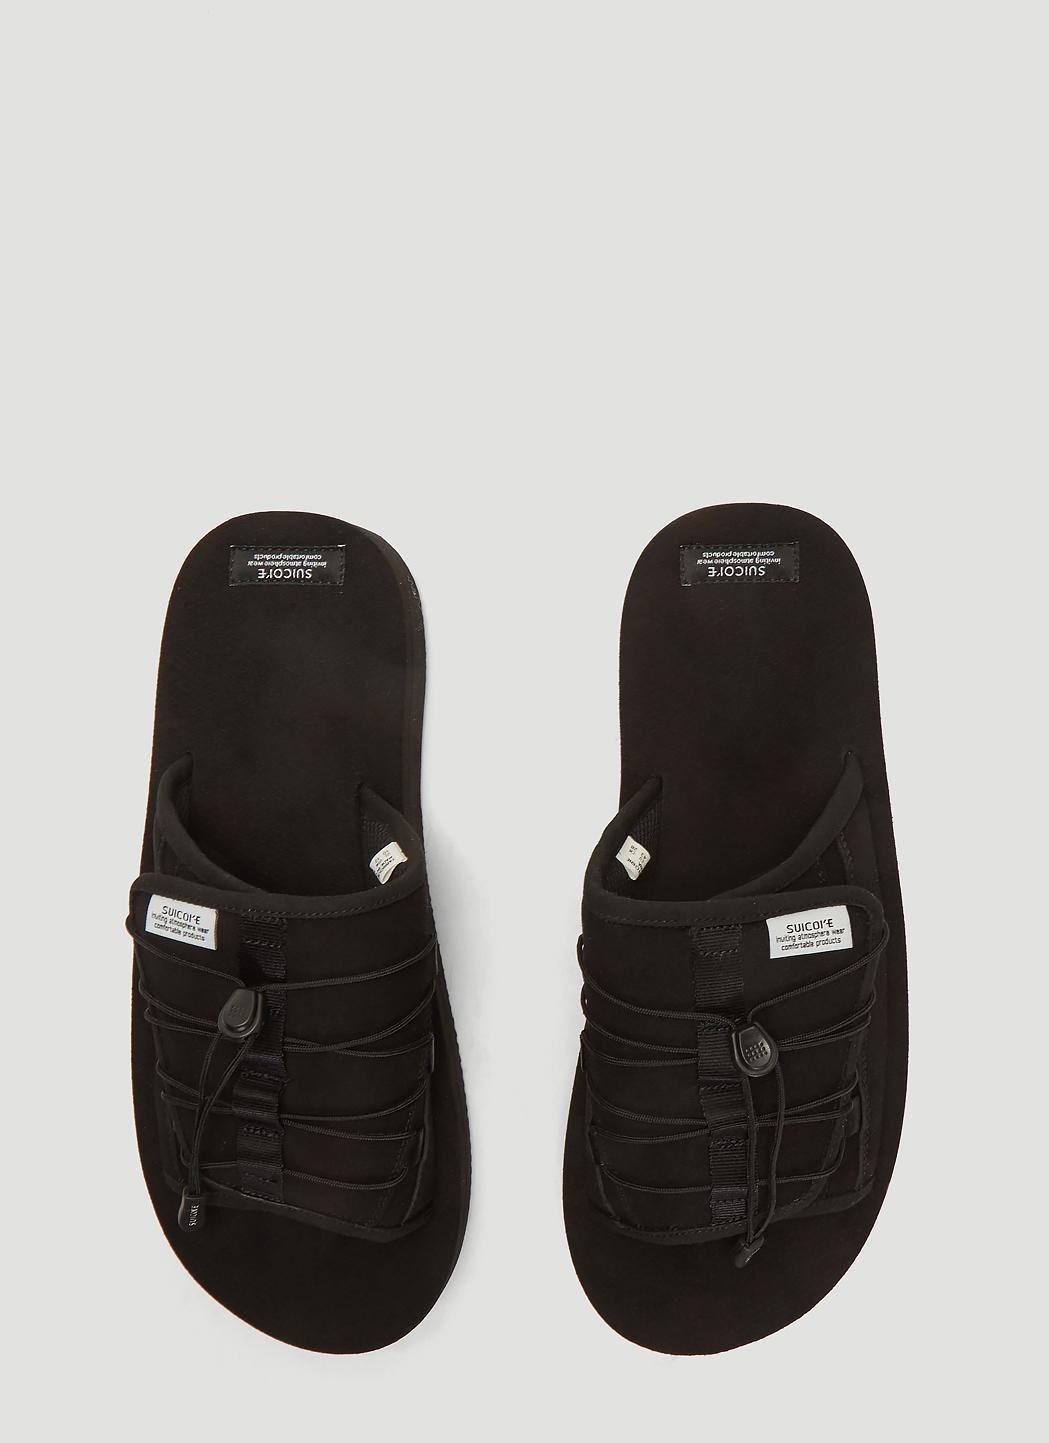 46a191aafa7a Suicoke Olas-ecs Sandals In Black in Black for Men - Lyst